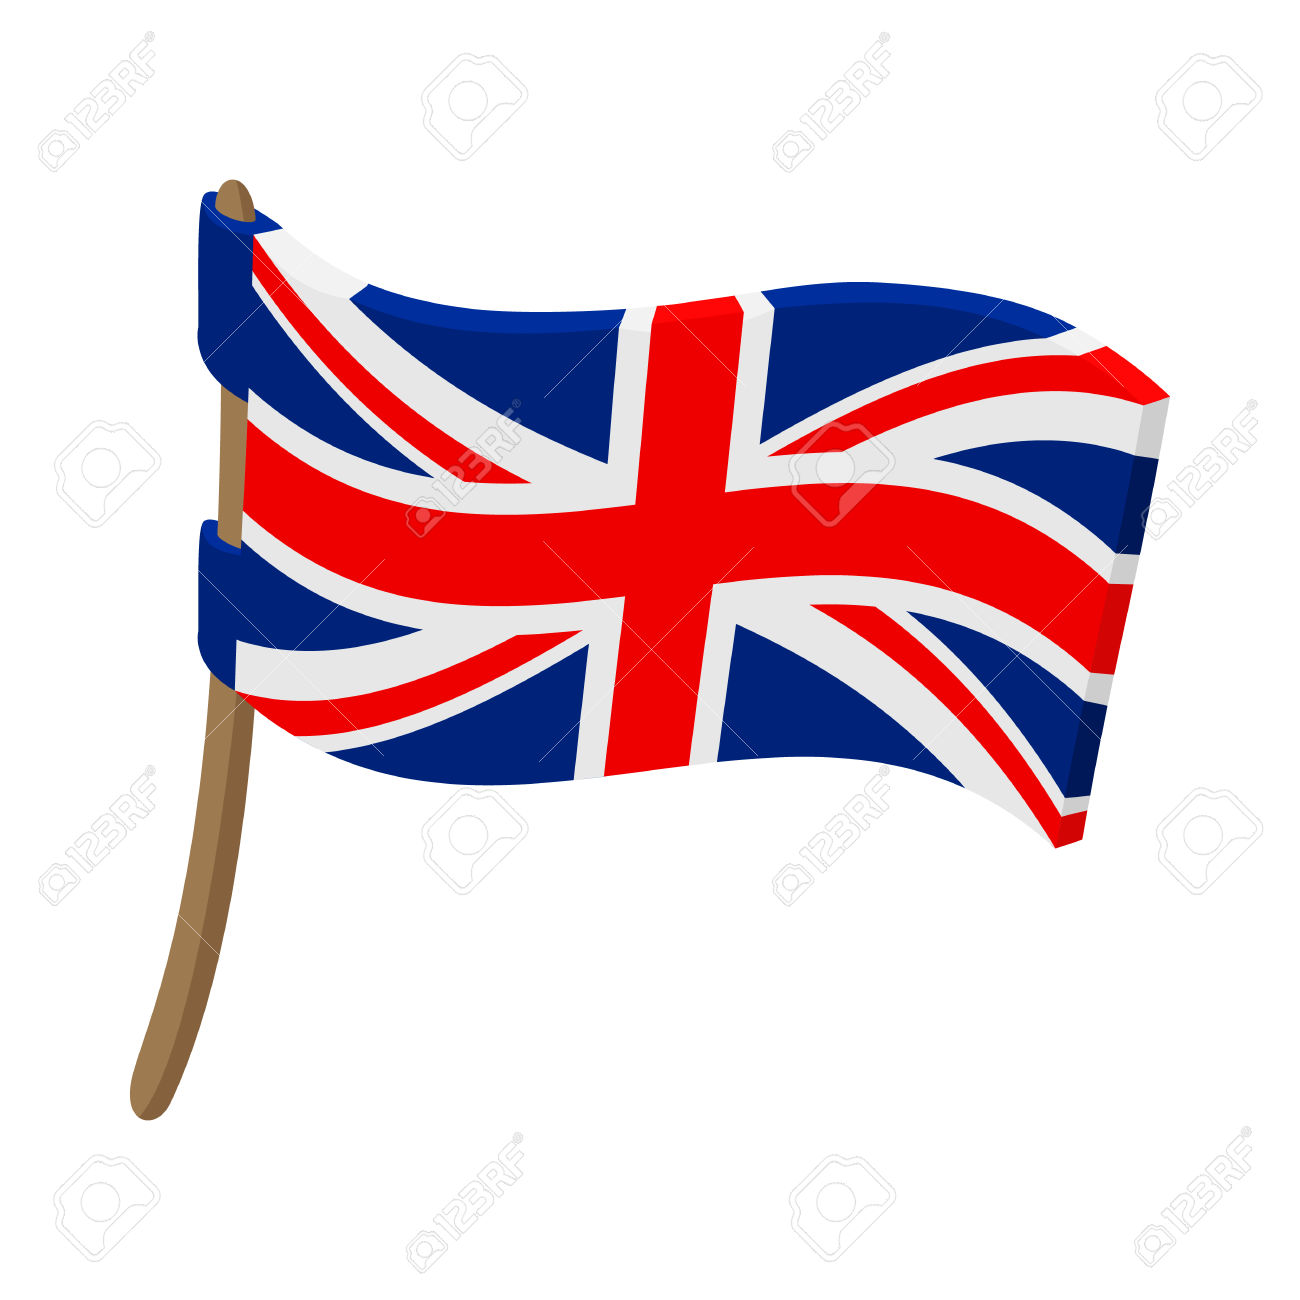 england flag clipart at getdrawings com free for personal use